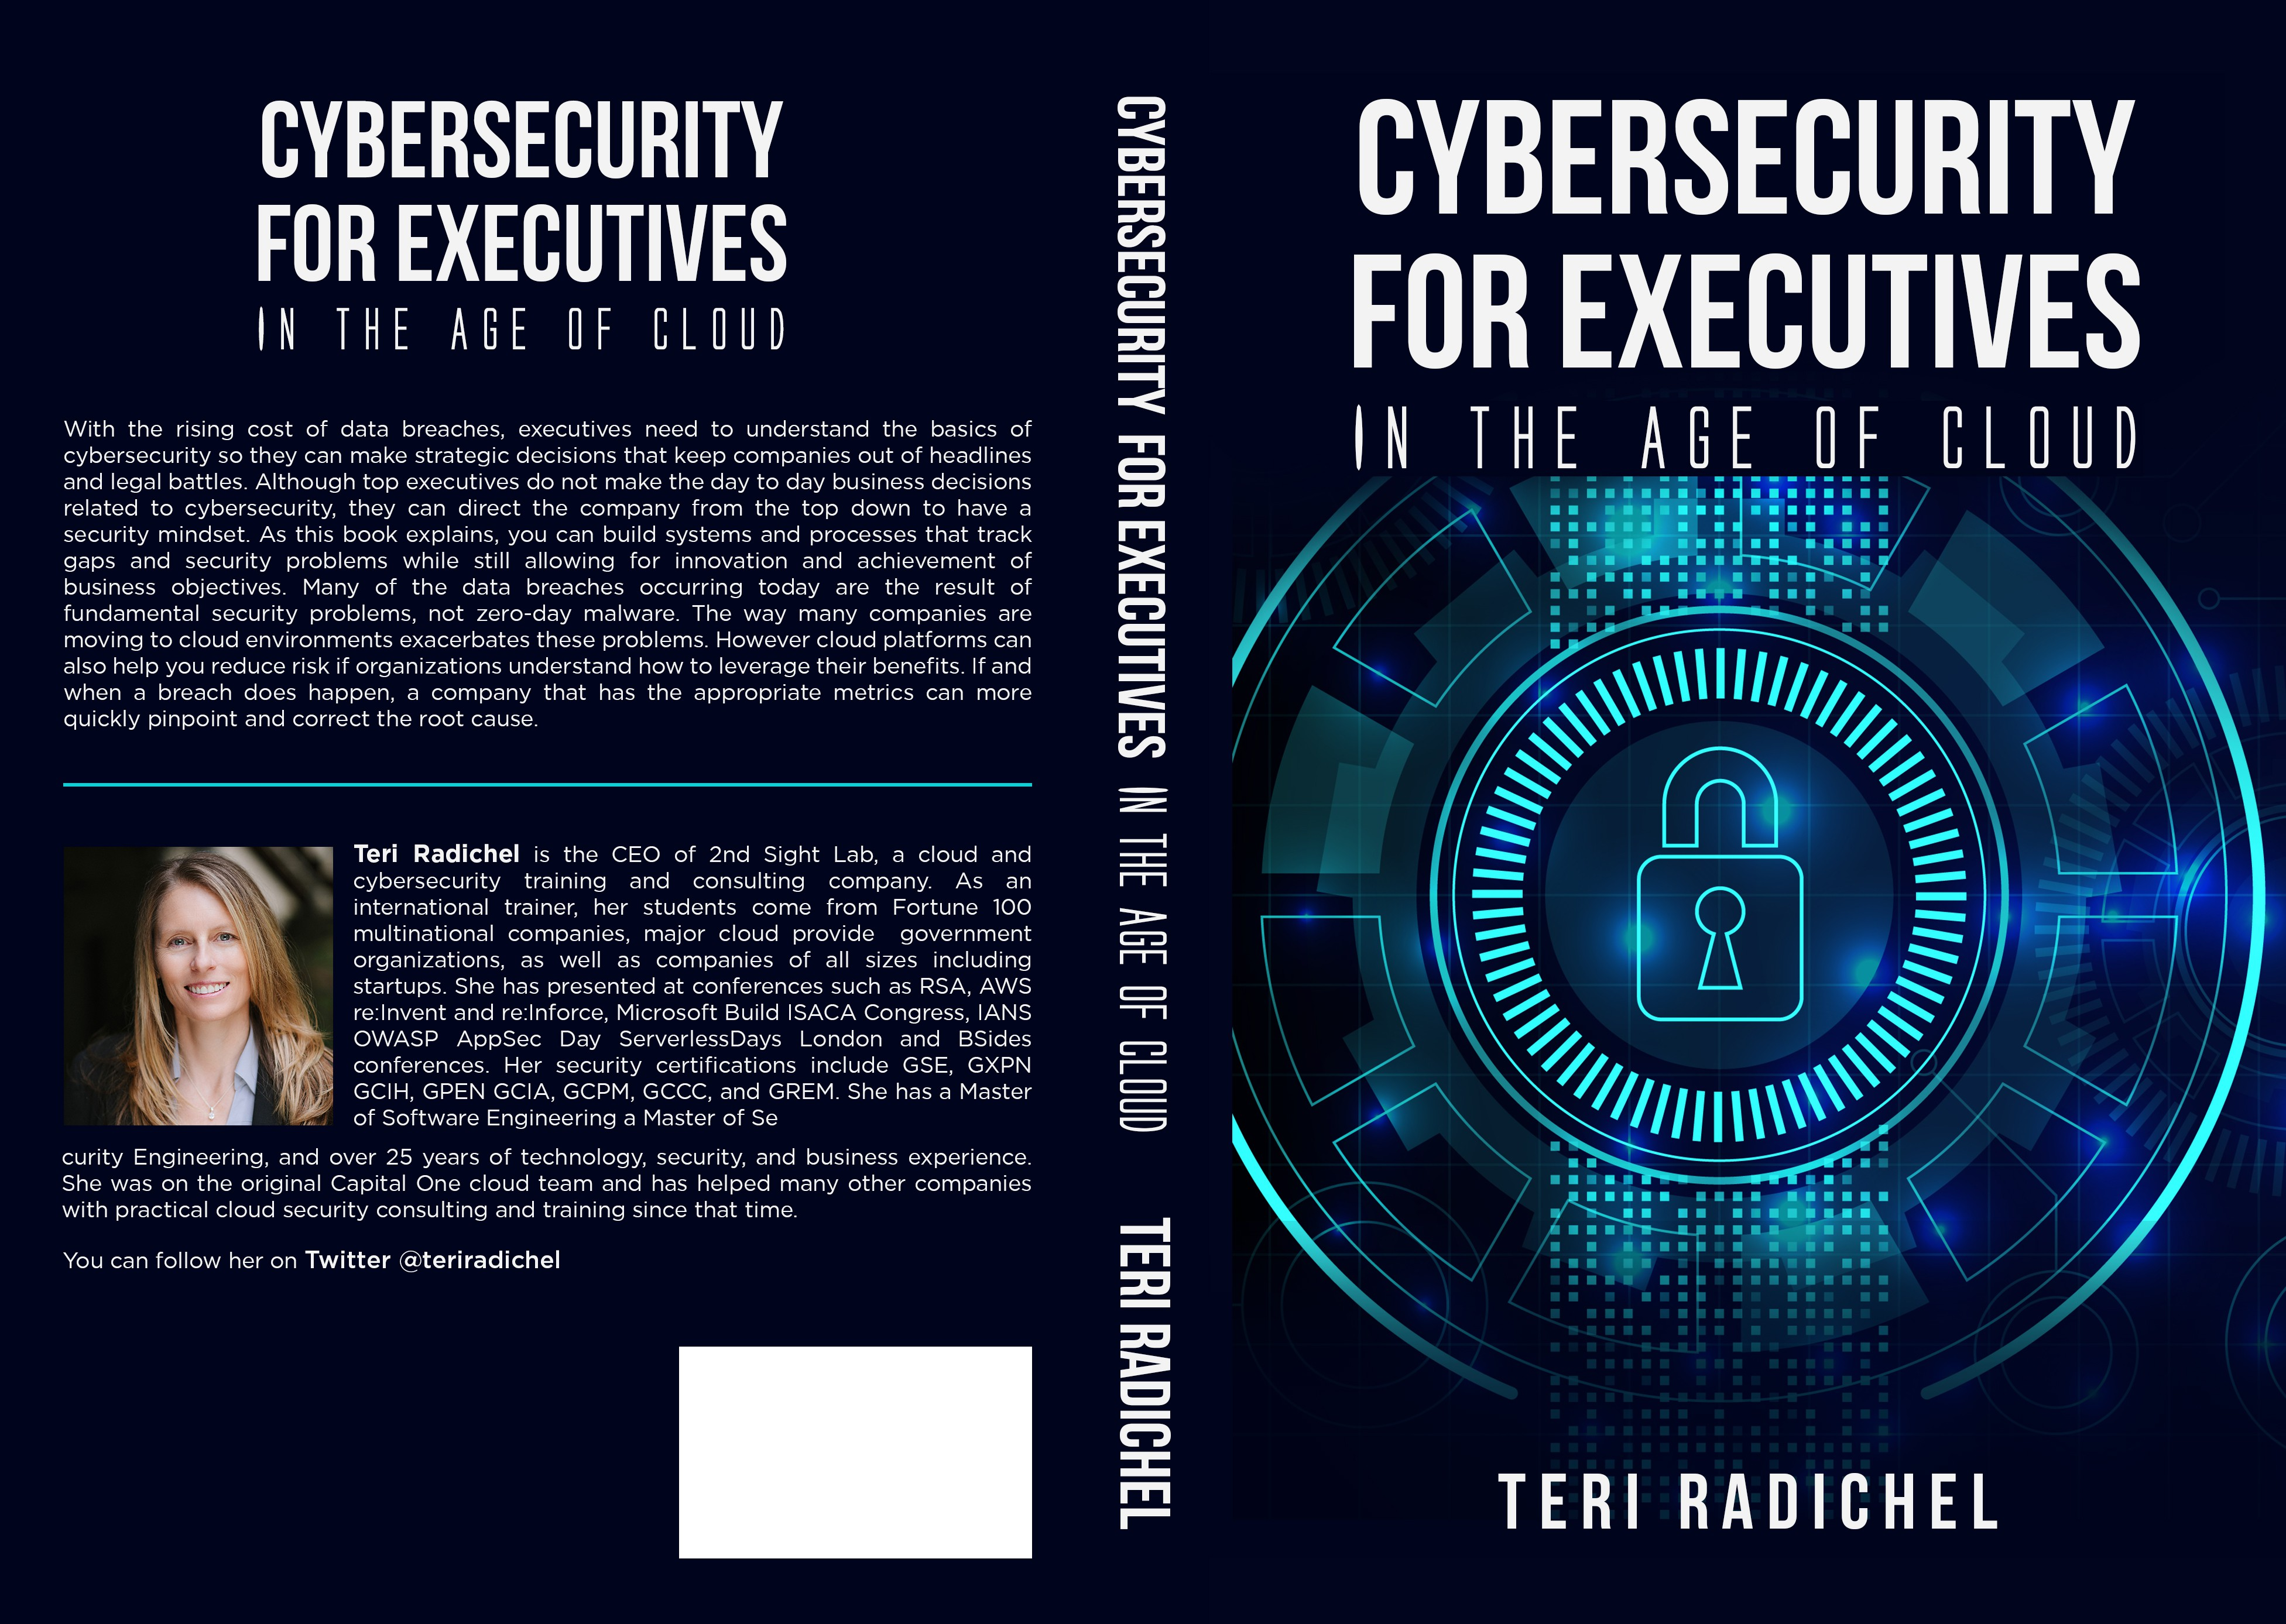 Cybersecurity for Executives Book Cover